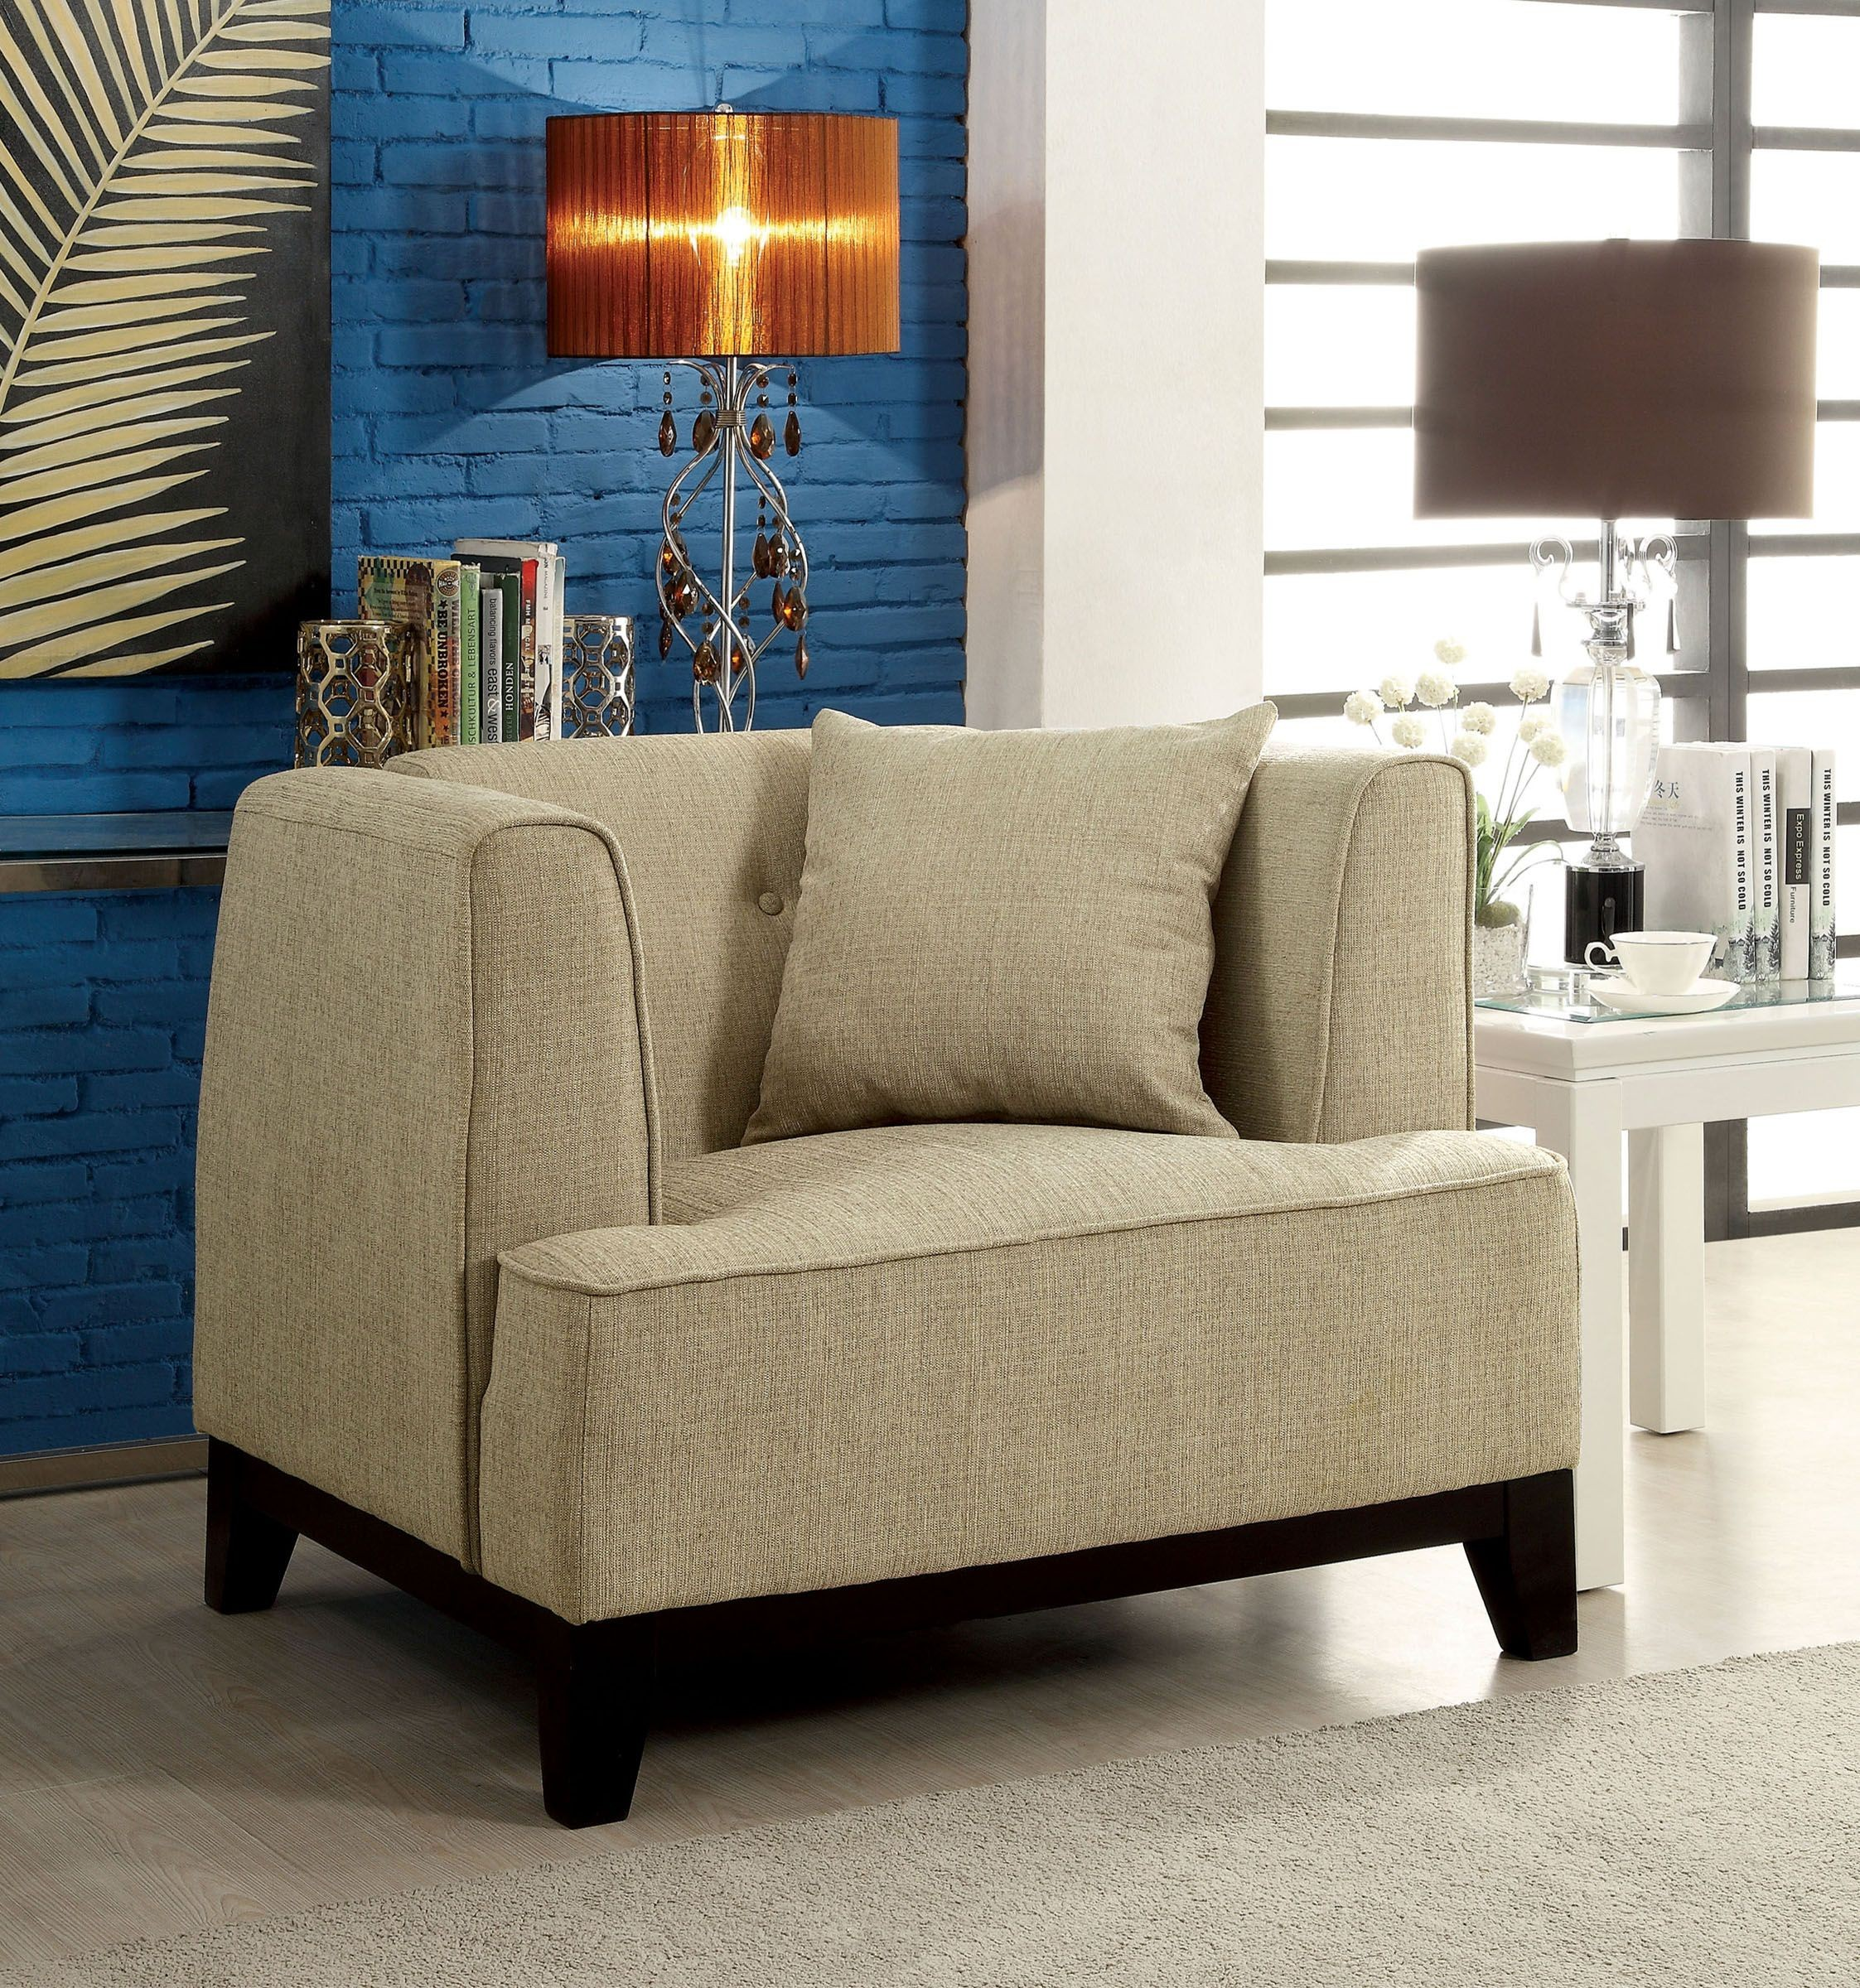 Sofia Beige Living Room Set From Furniture Of America